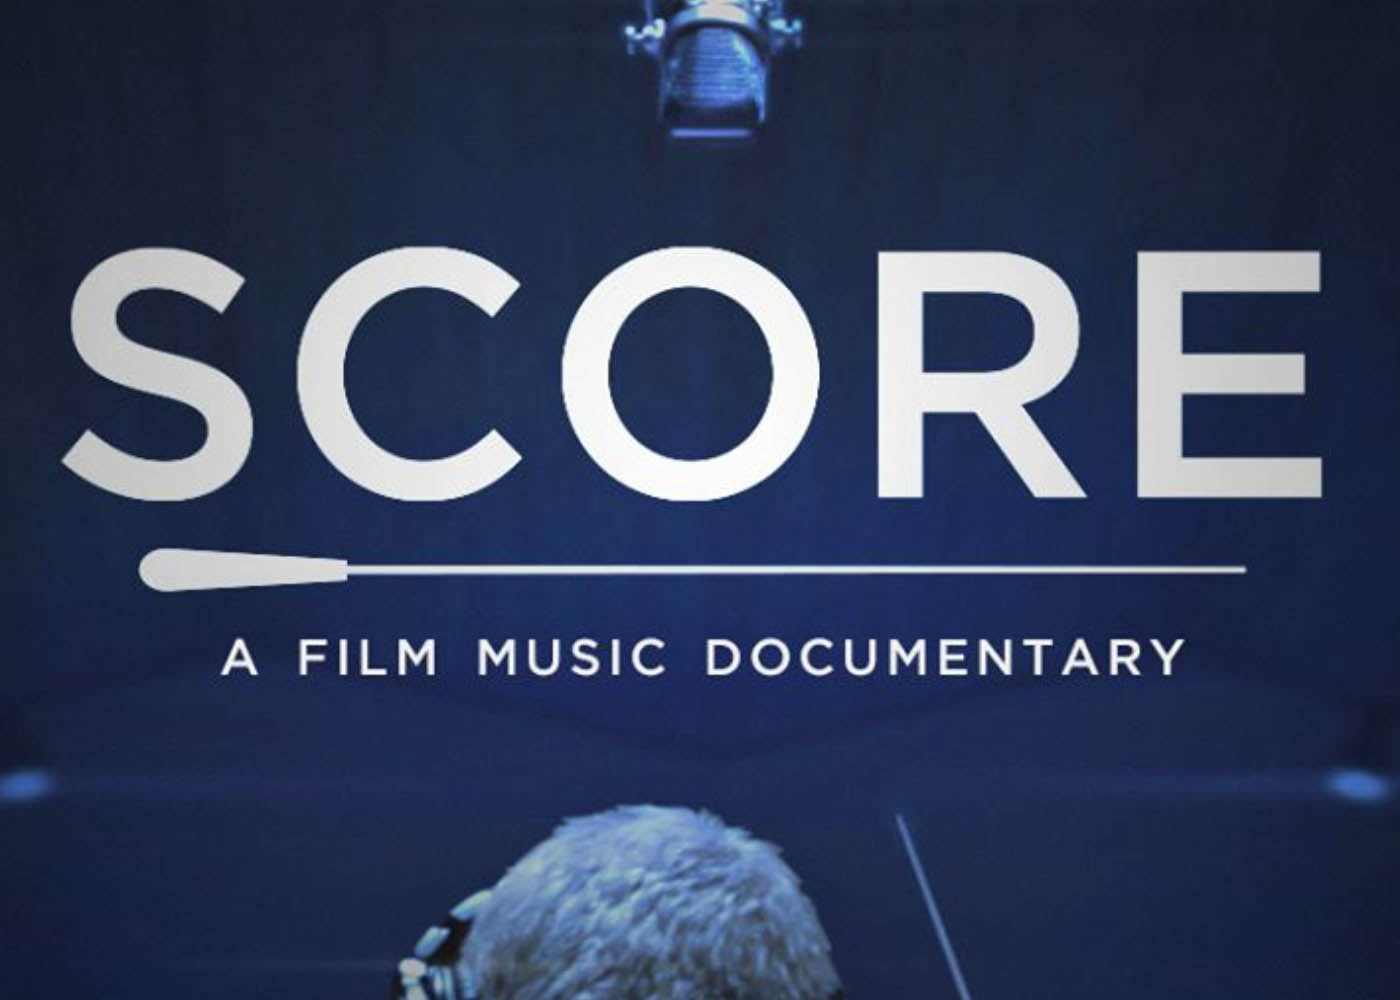 Score: A Film Music Documentary Plays at True Fans' Heartstrings